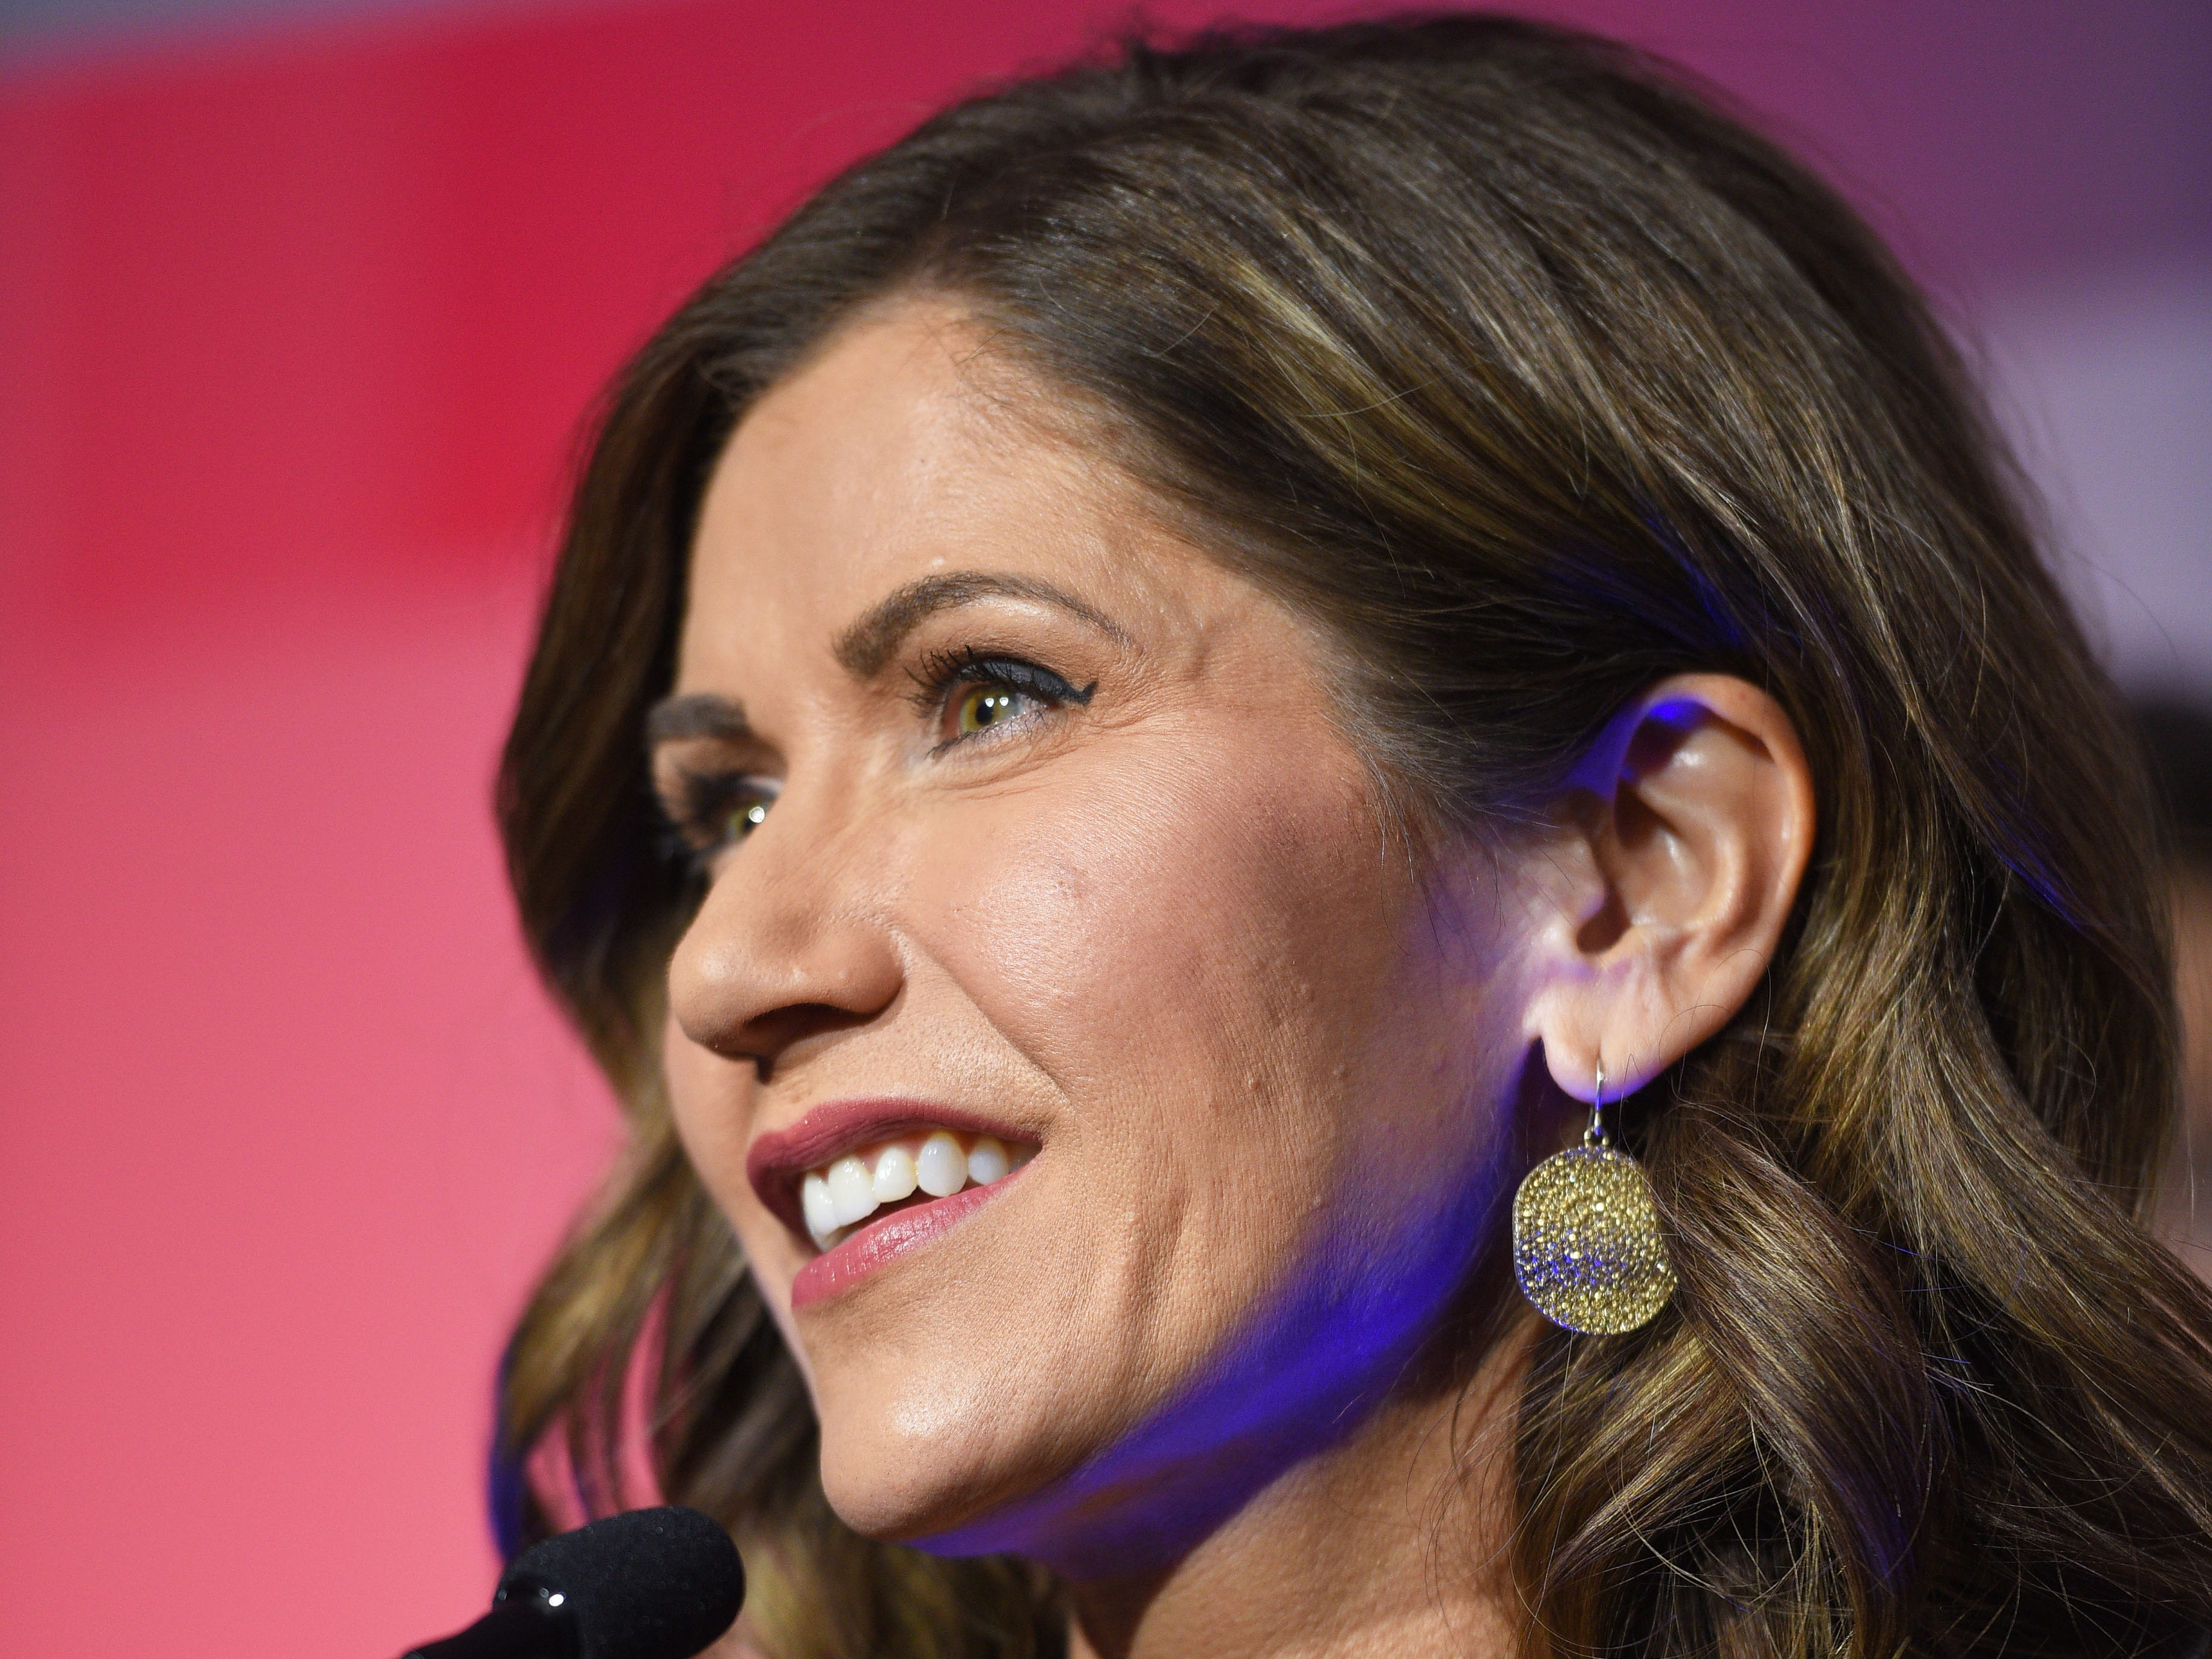 Kristi Noem announces key staff hires, including her daughter, for new administration